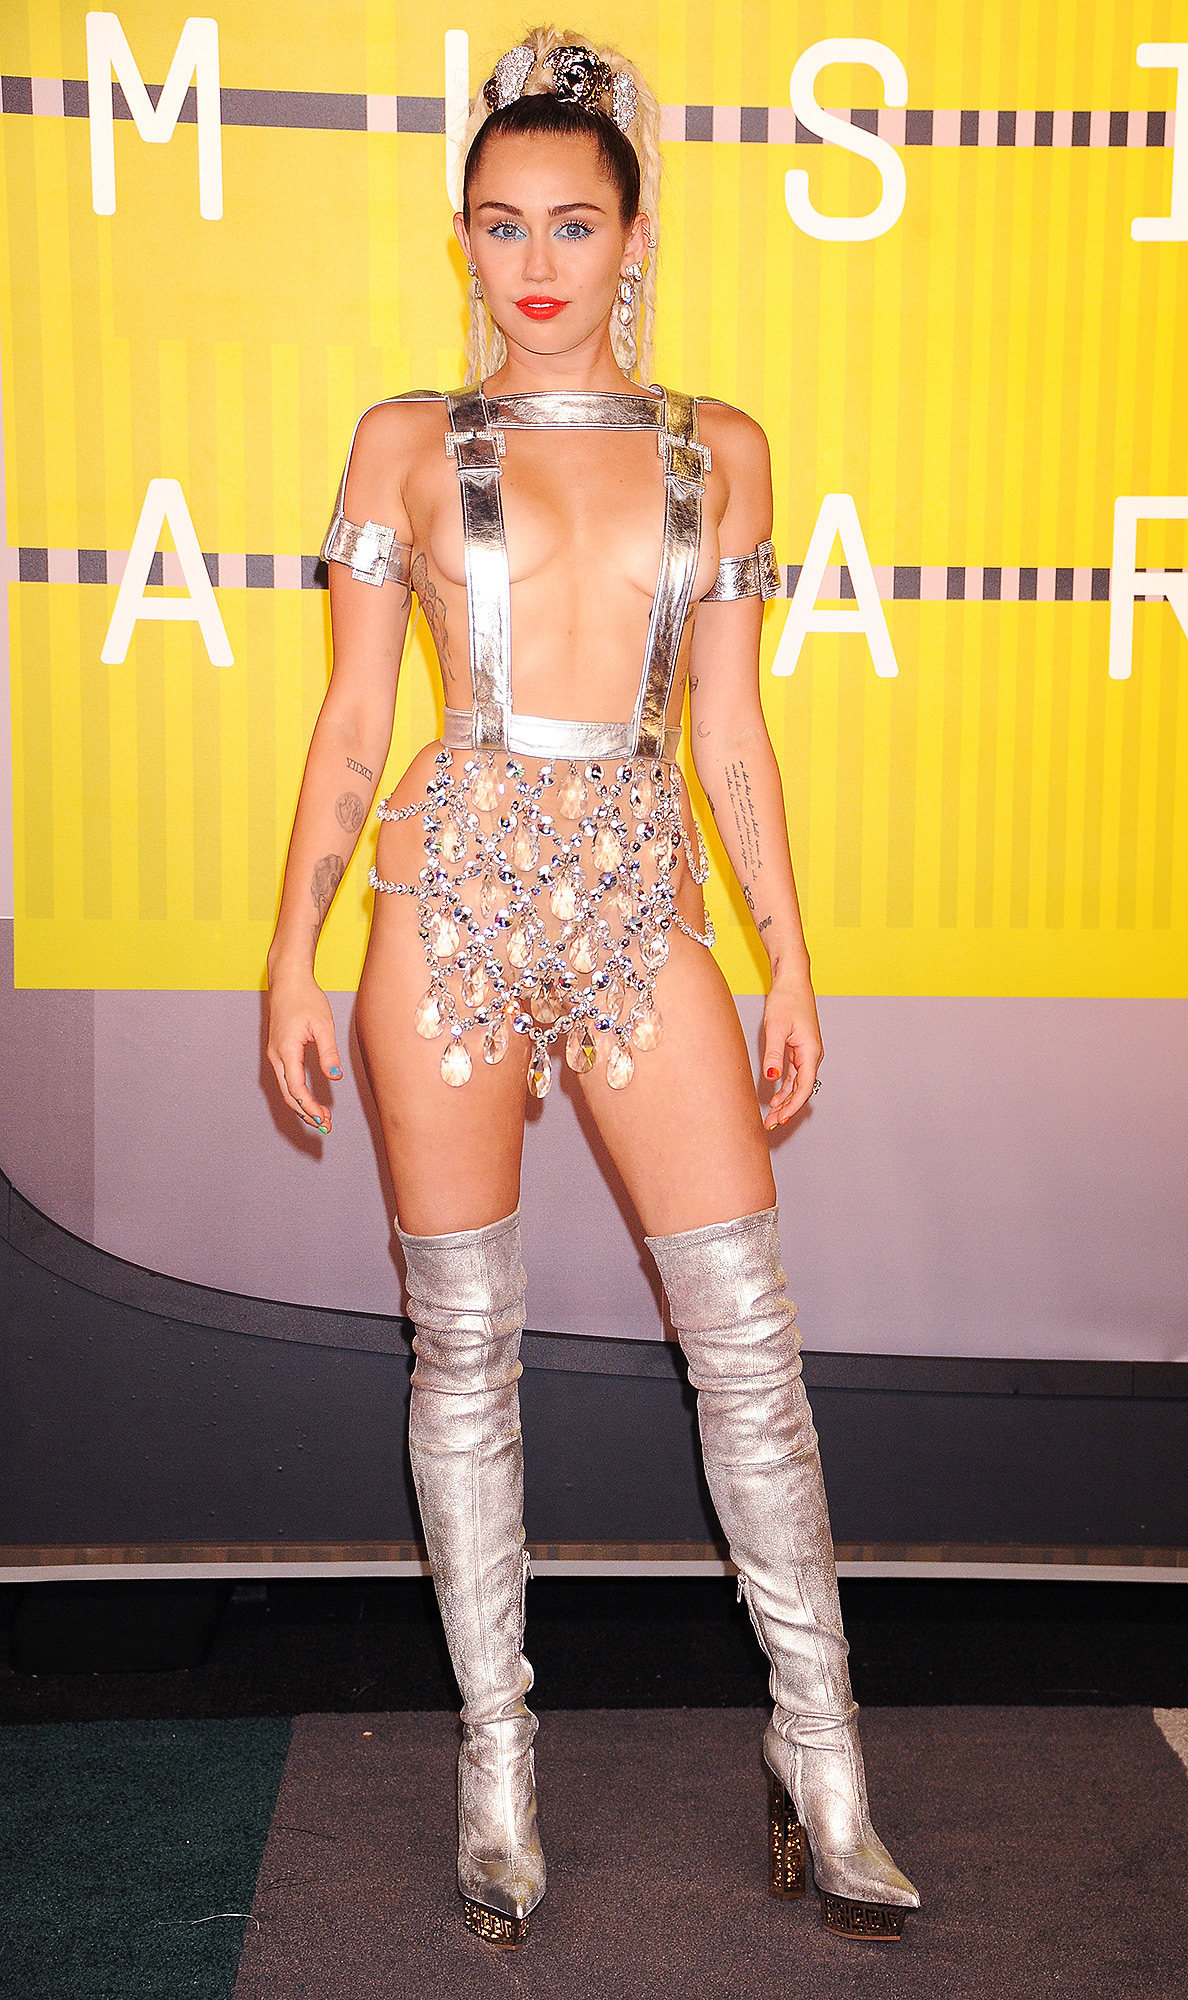 USA - The 2015 MTV Video Music Awards - Arrivals